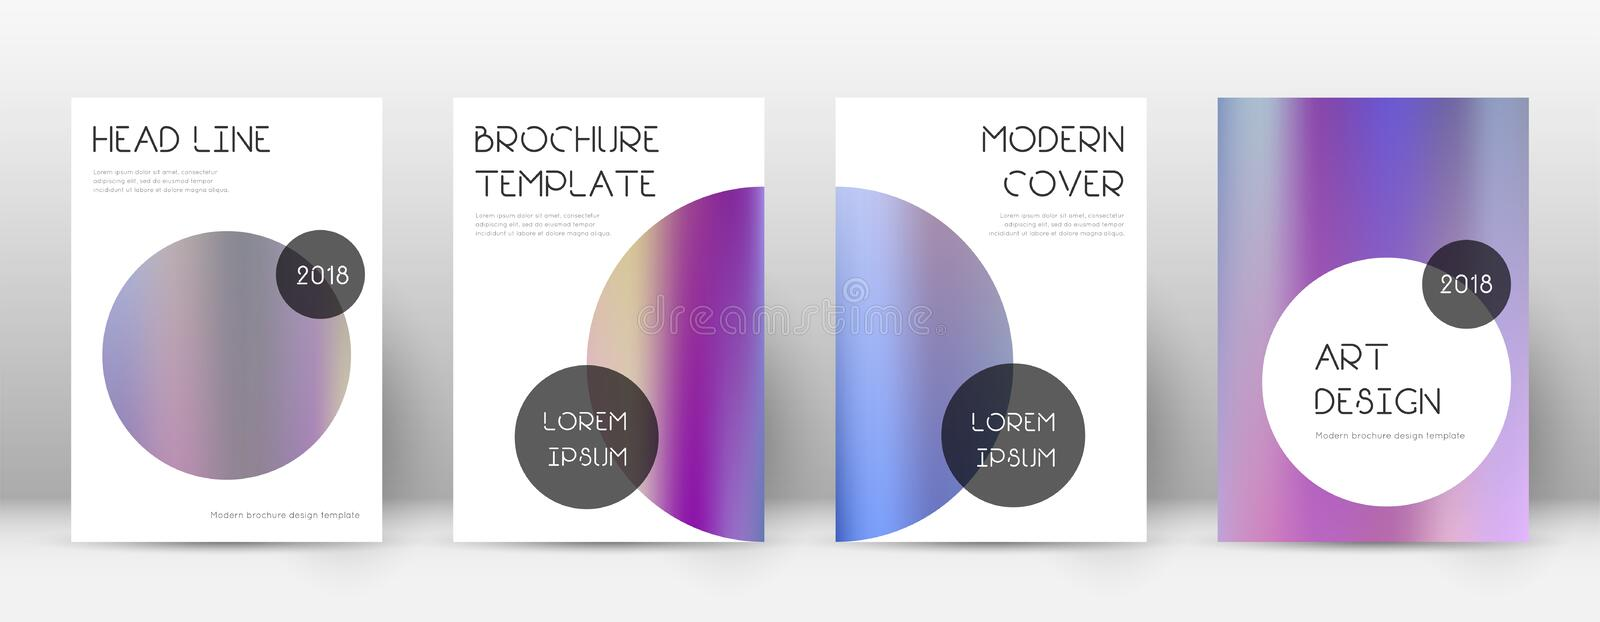 Flyer layout. Trendy energetic template for Brochure, Annual Report, Magazine, Poster, Corporate Presentation, Portfolio, Flyer. Beauteous color gradients vector illustration